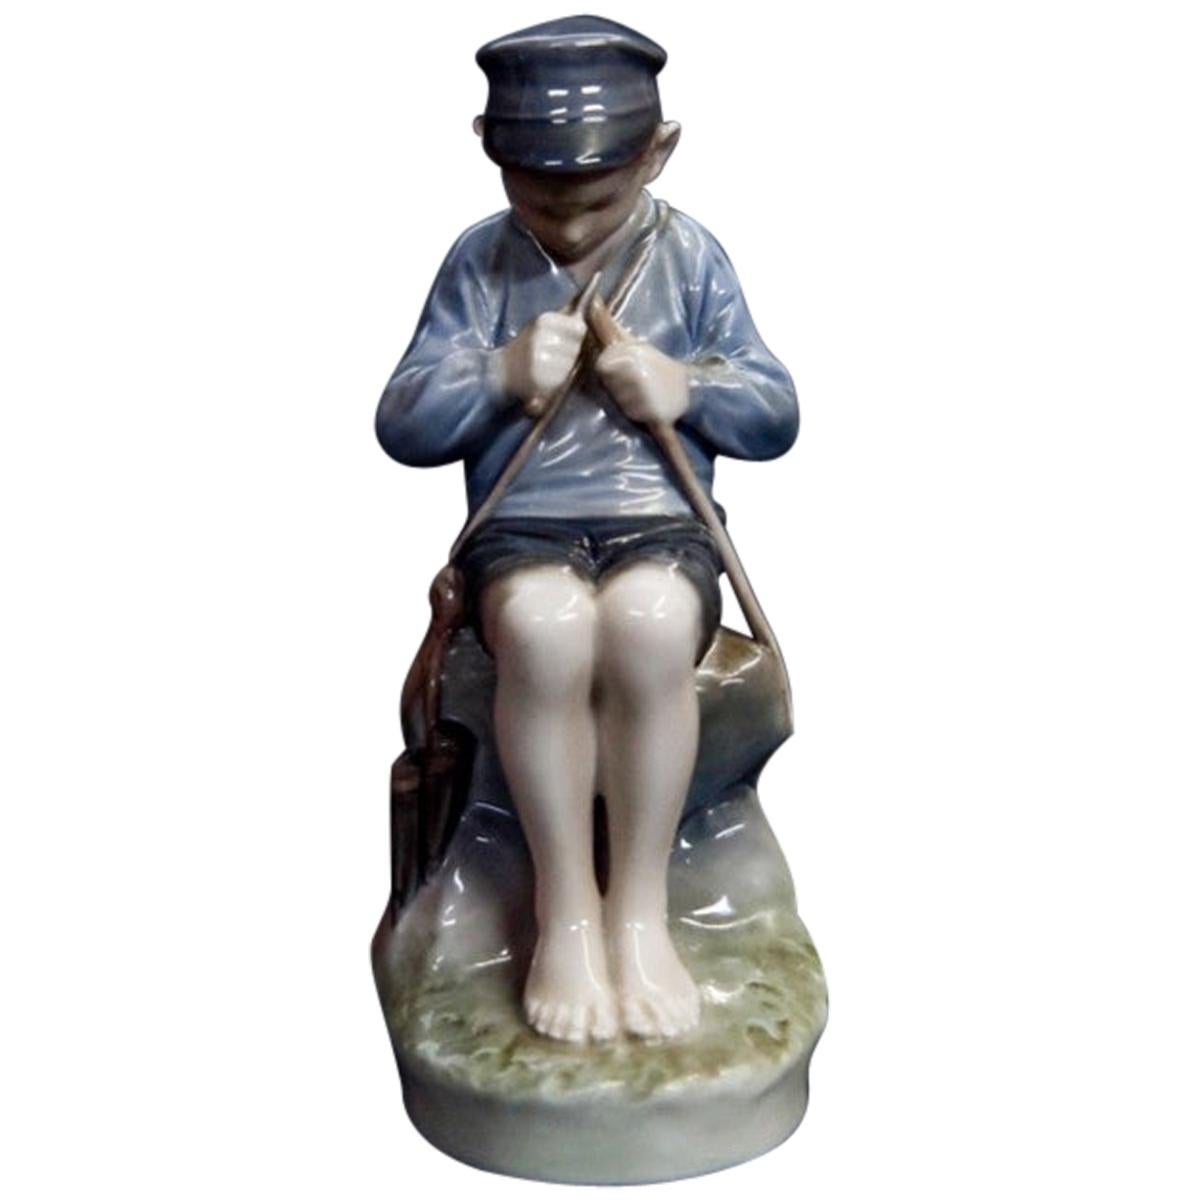 Royal Copenhagen Porcelain Figurine No. 905